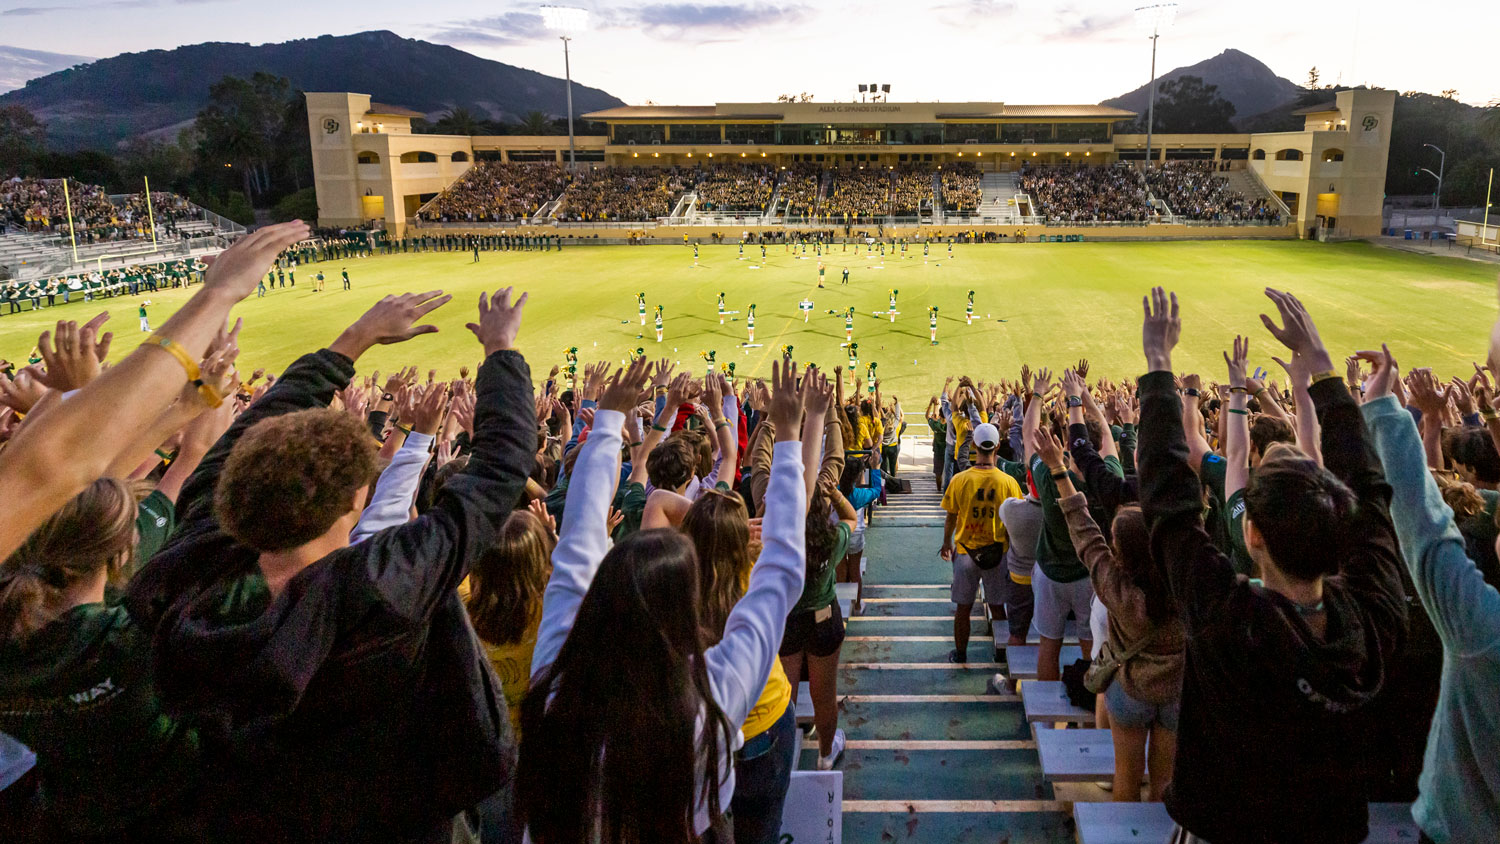 Students cheer in the stands of Spanos Stadium at Big Fall Welcome